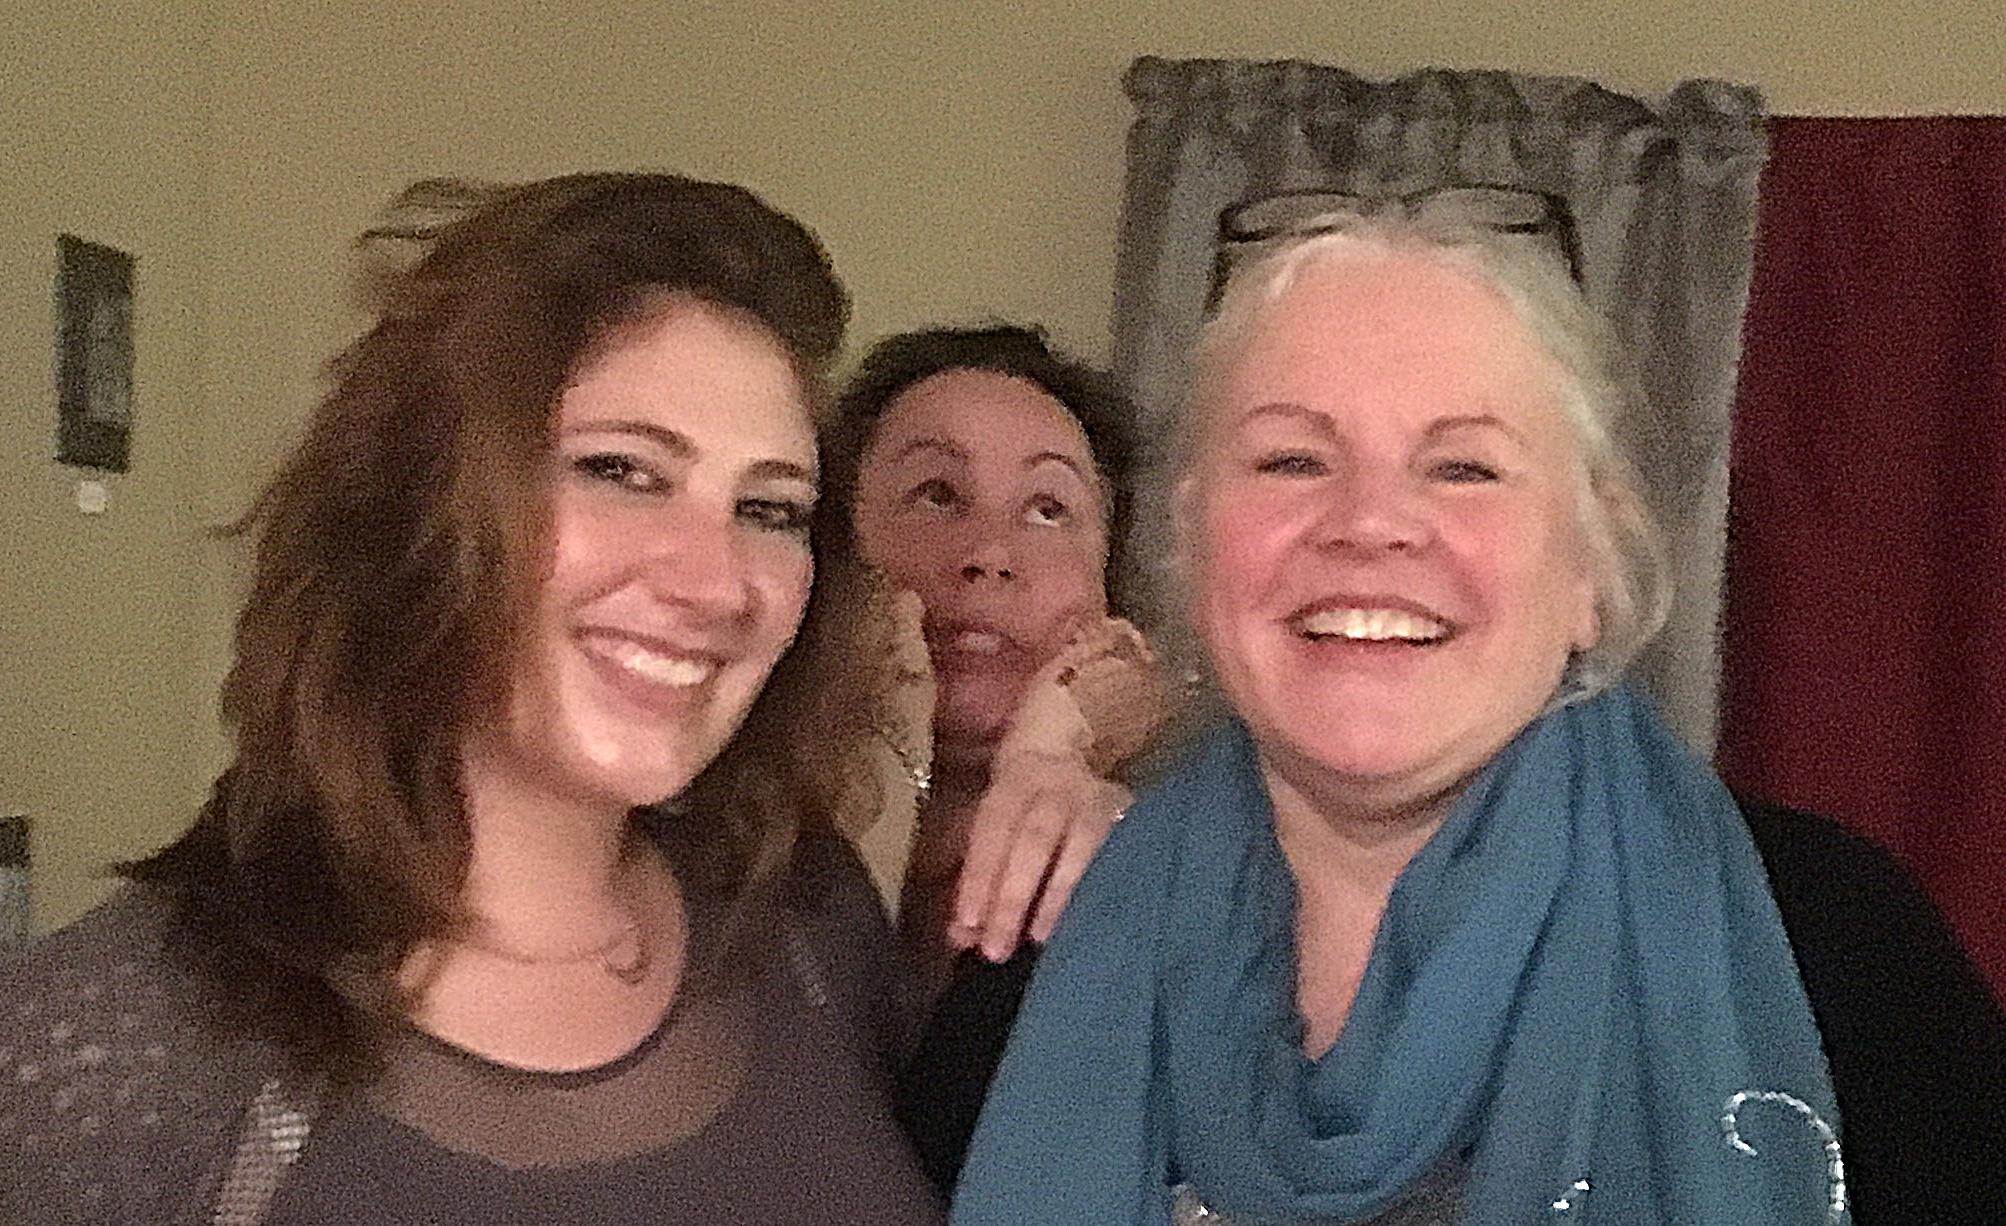 L-R: Zabel and me. Thanks to Maria O'Connor for the photobomb :-) and Erica Jolly MacKenzie for the photo!